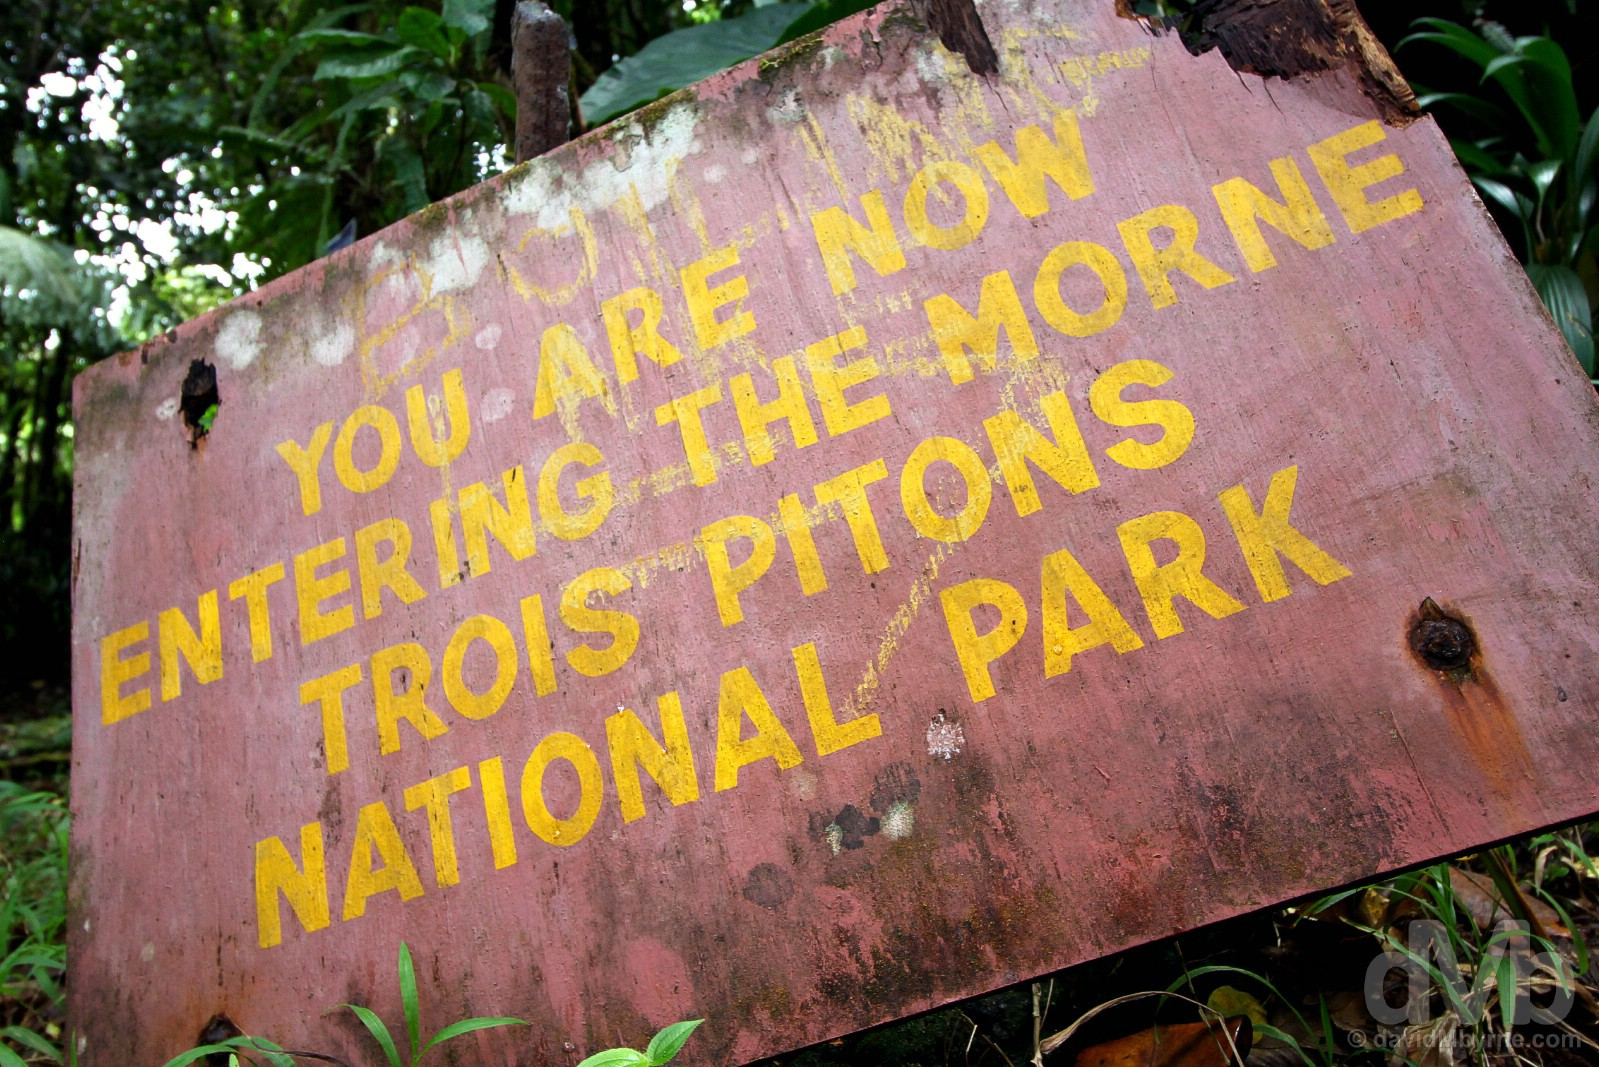 Morne Trois Pitons National Park, Dominica, Lesser Antilles. June 11, 2015.